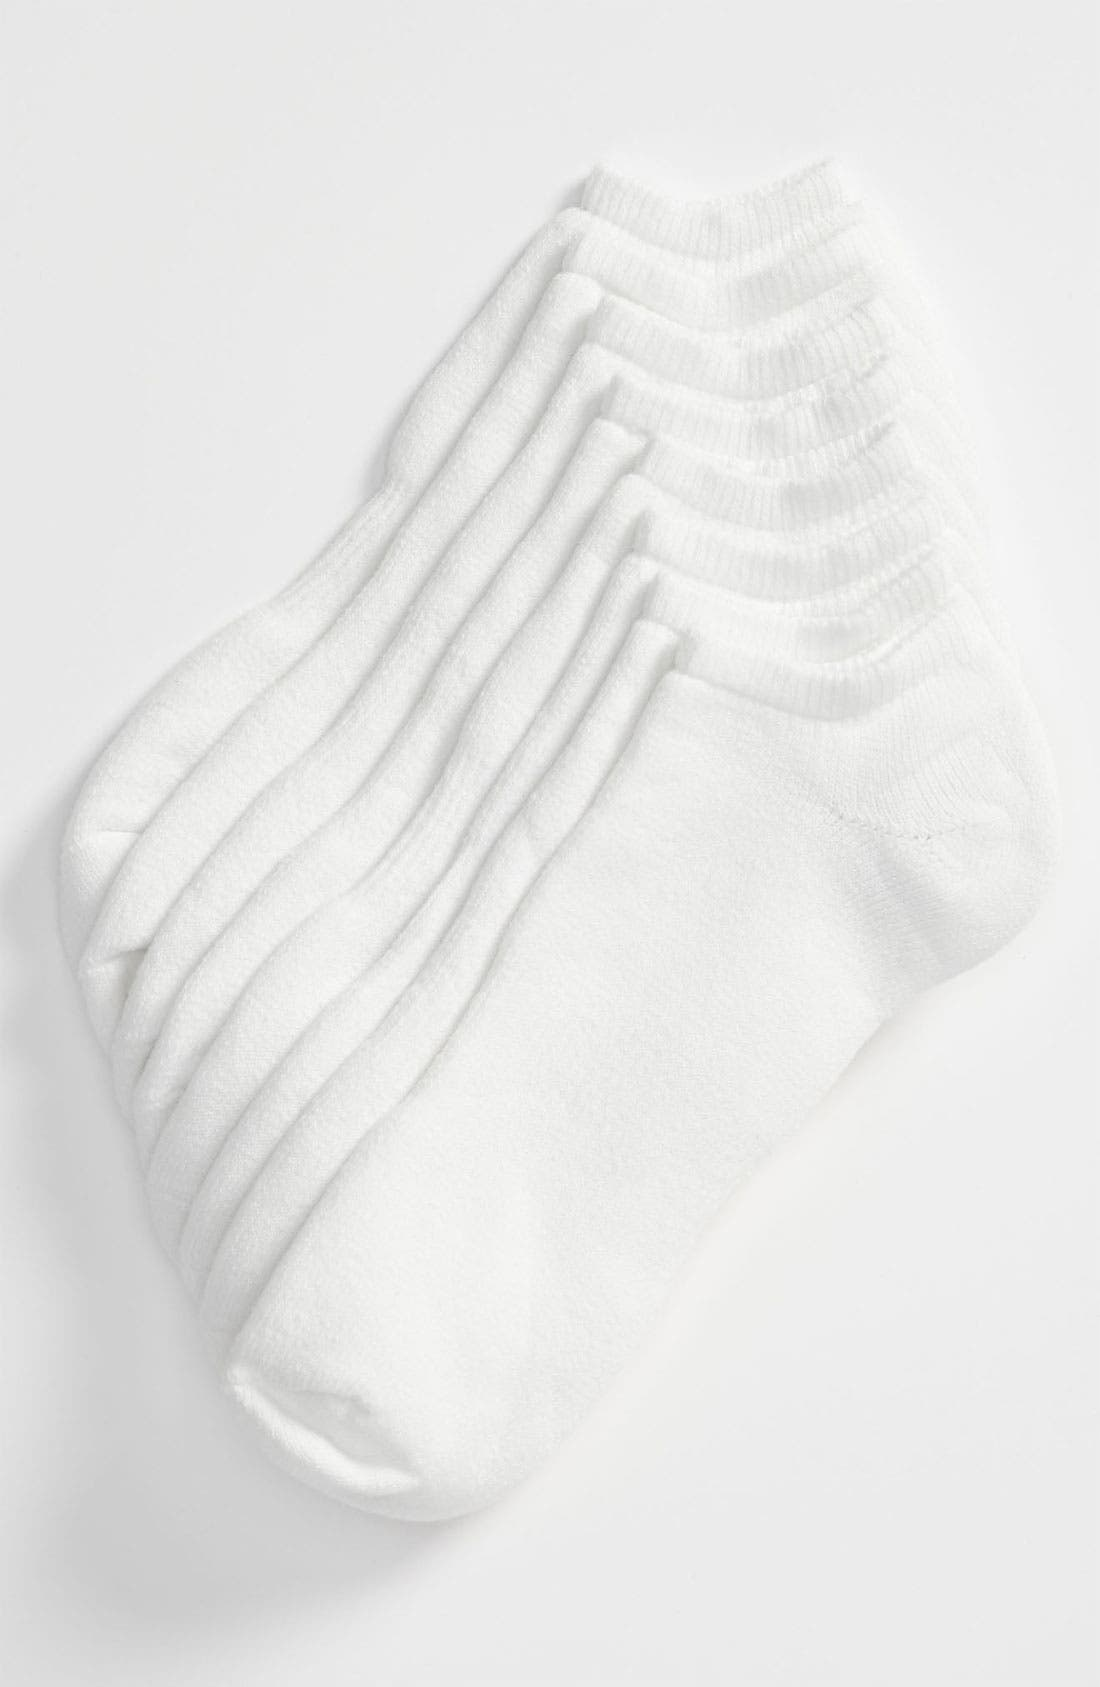 Alternate Image 1 Selected - Nordstrom Men's Shop King Size No-Show Socks (4-Pack)